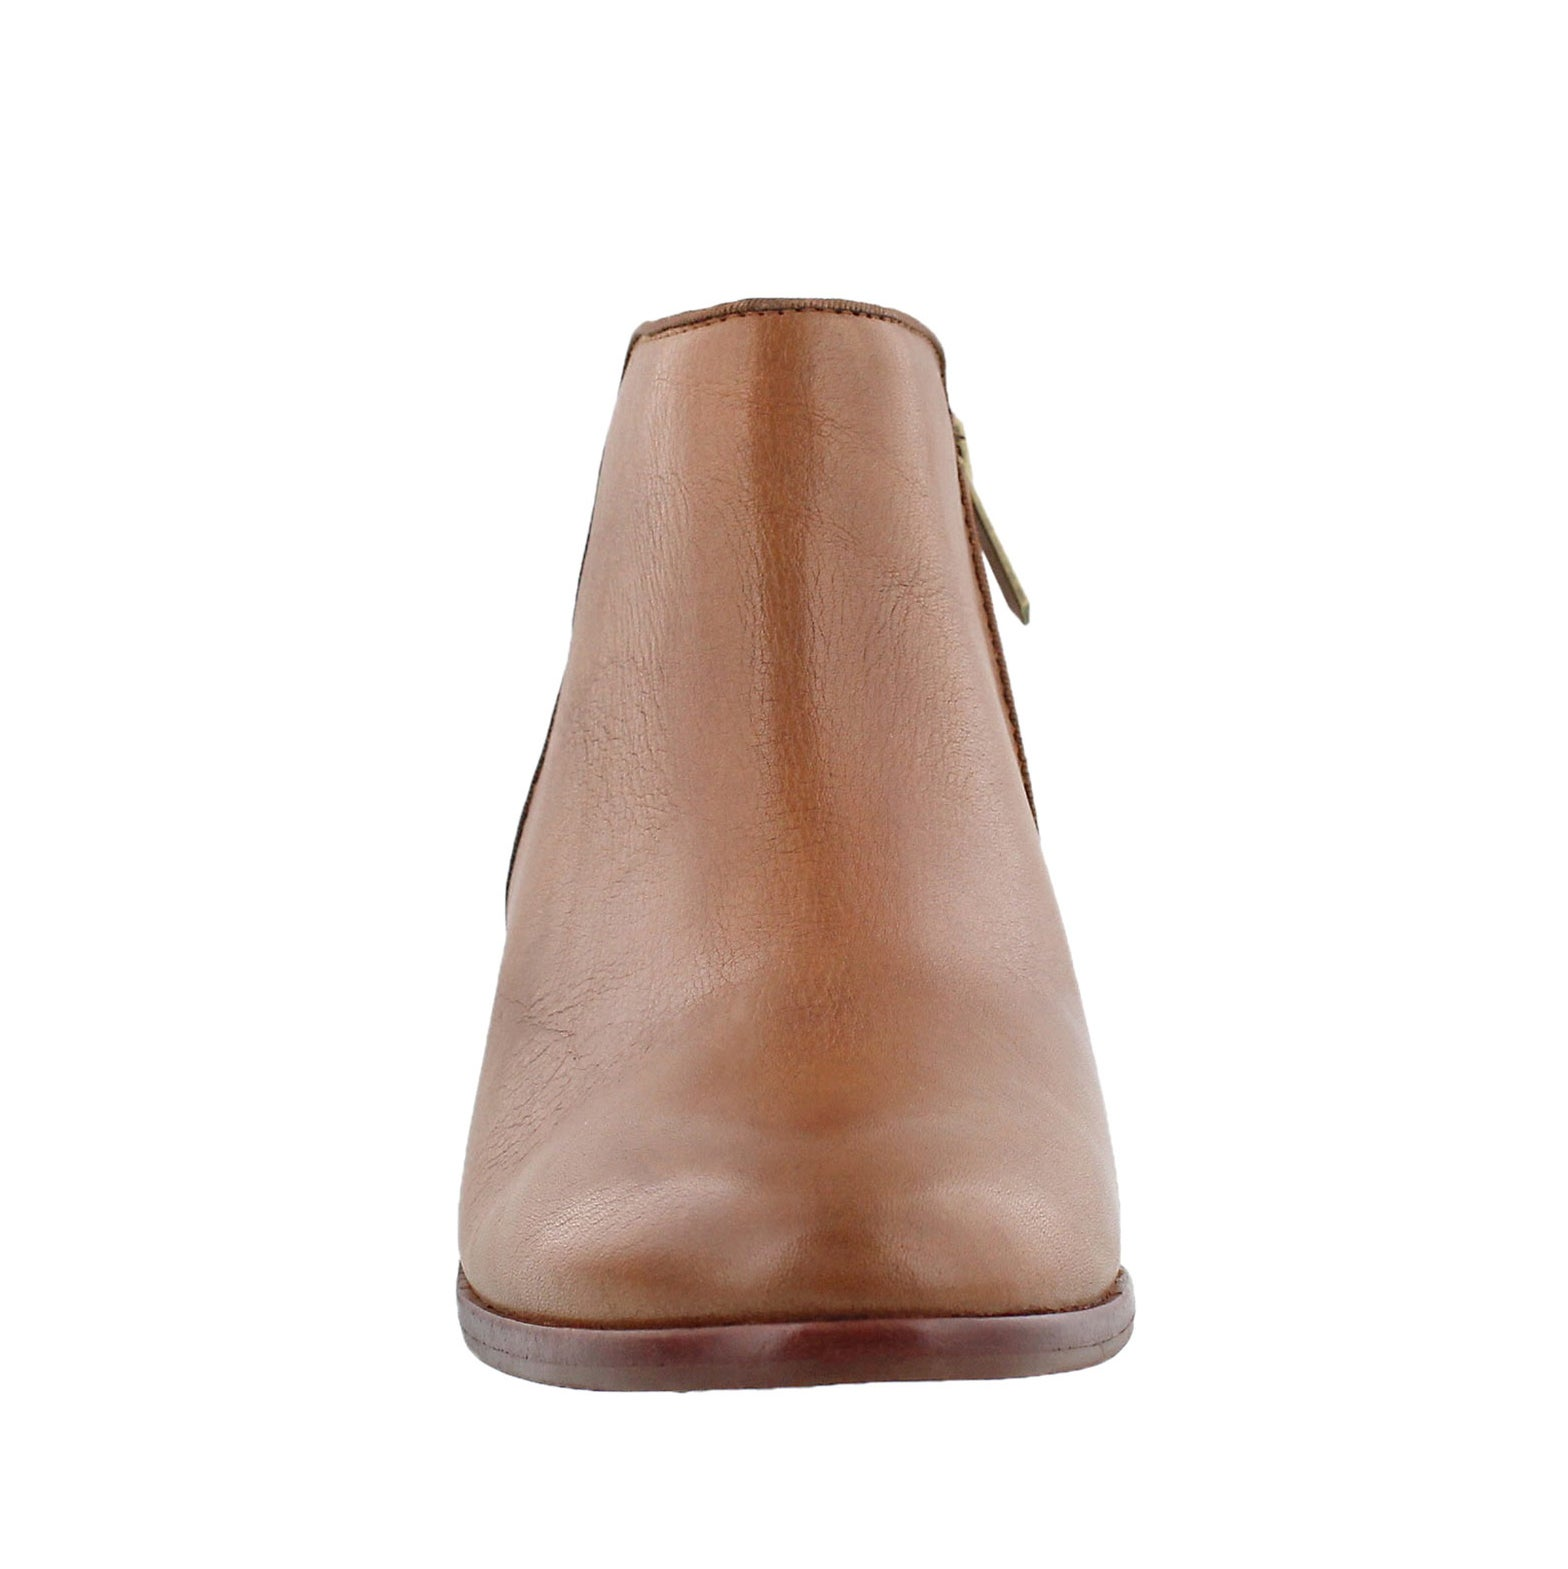 Lds Petty saddle leather casual bootie